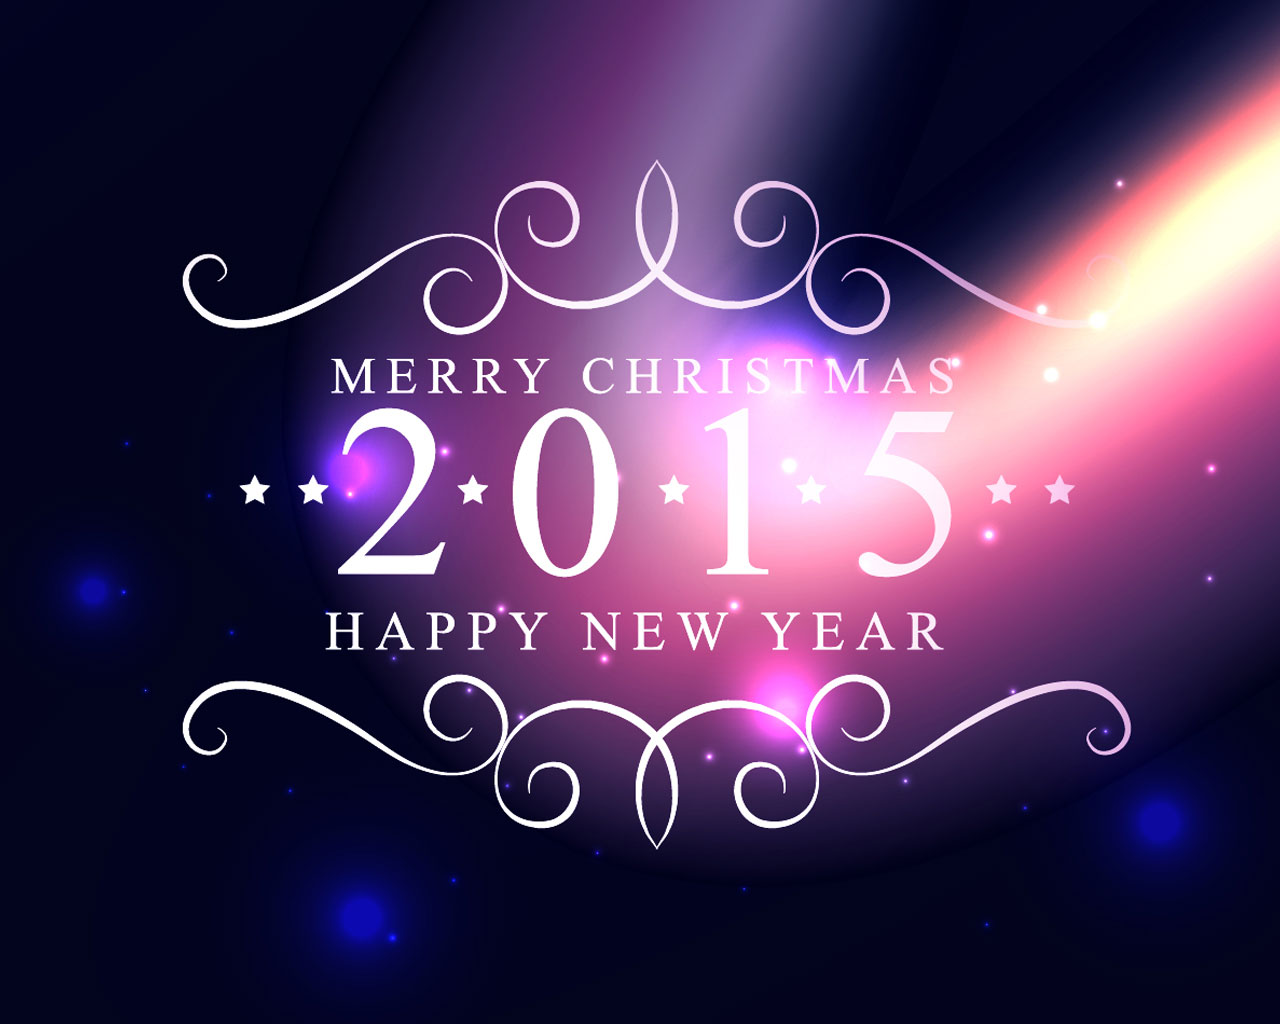 Cool Wallpaper Name Prashanth - 2015_happy_new_year_image1  Picture_489688.jpg